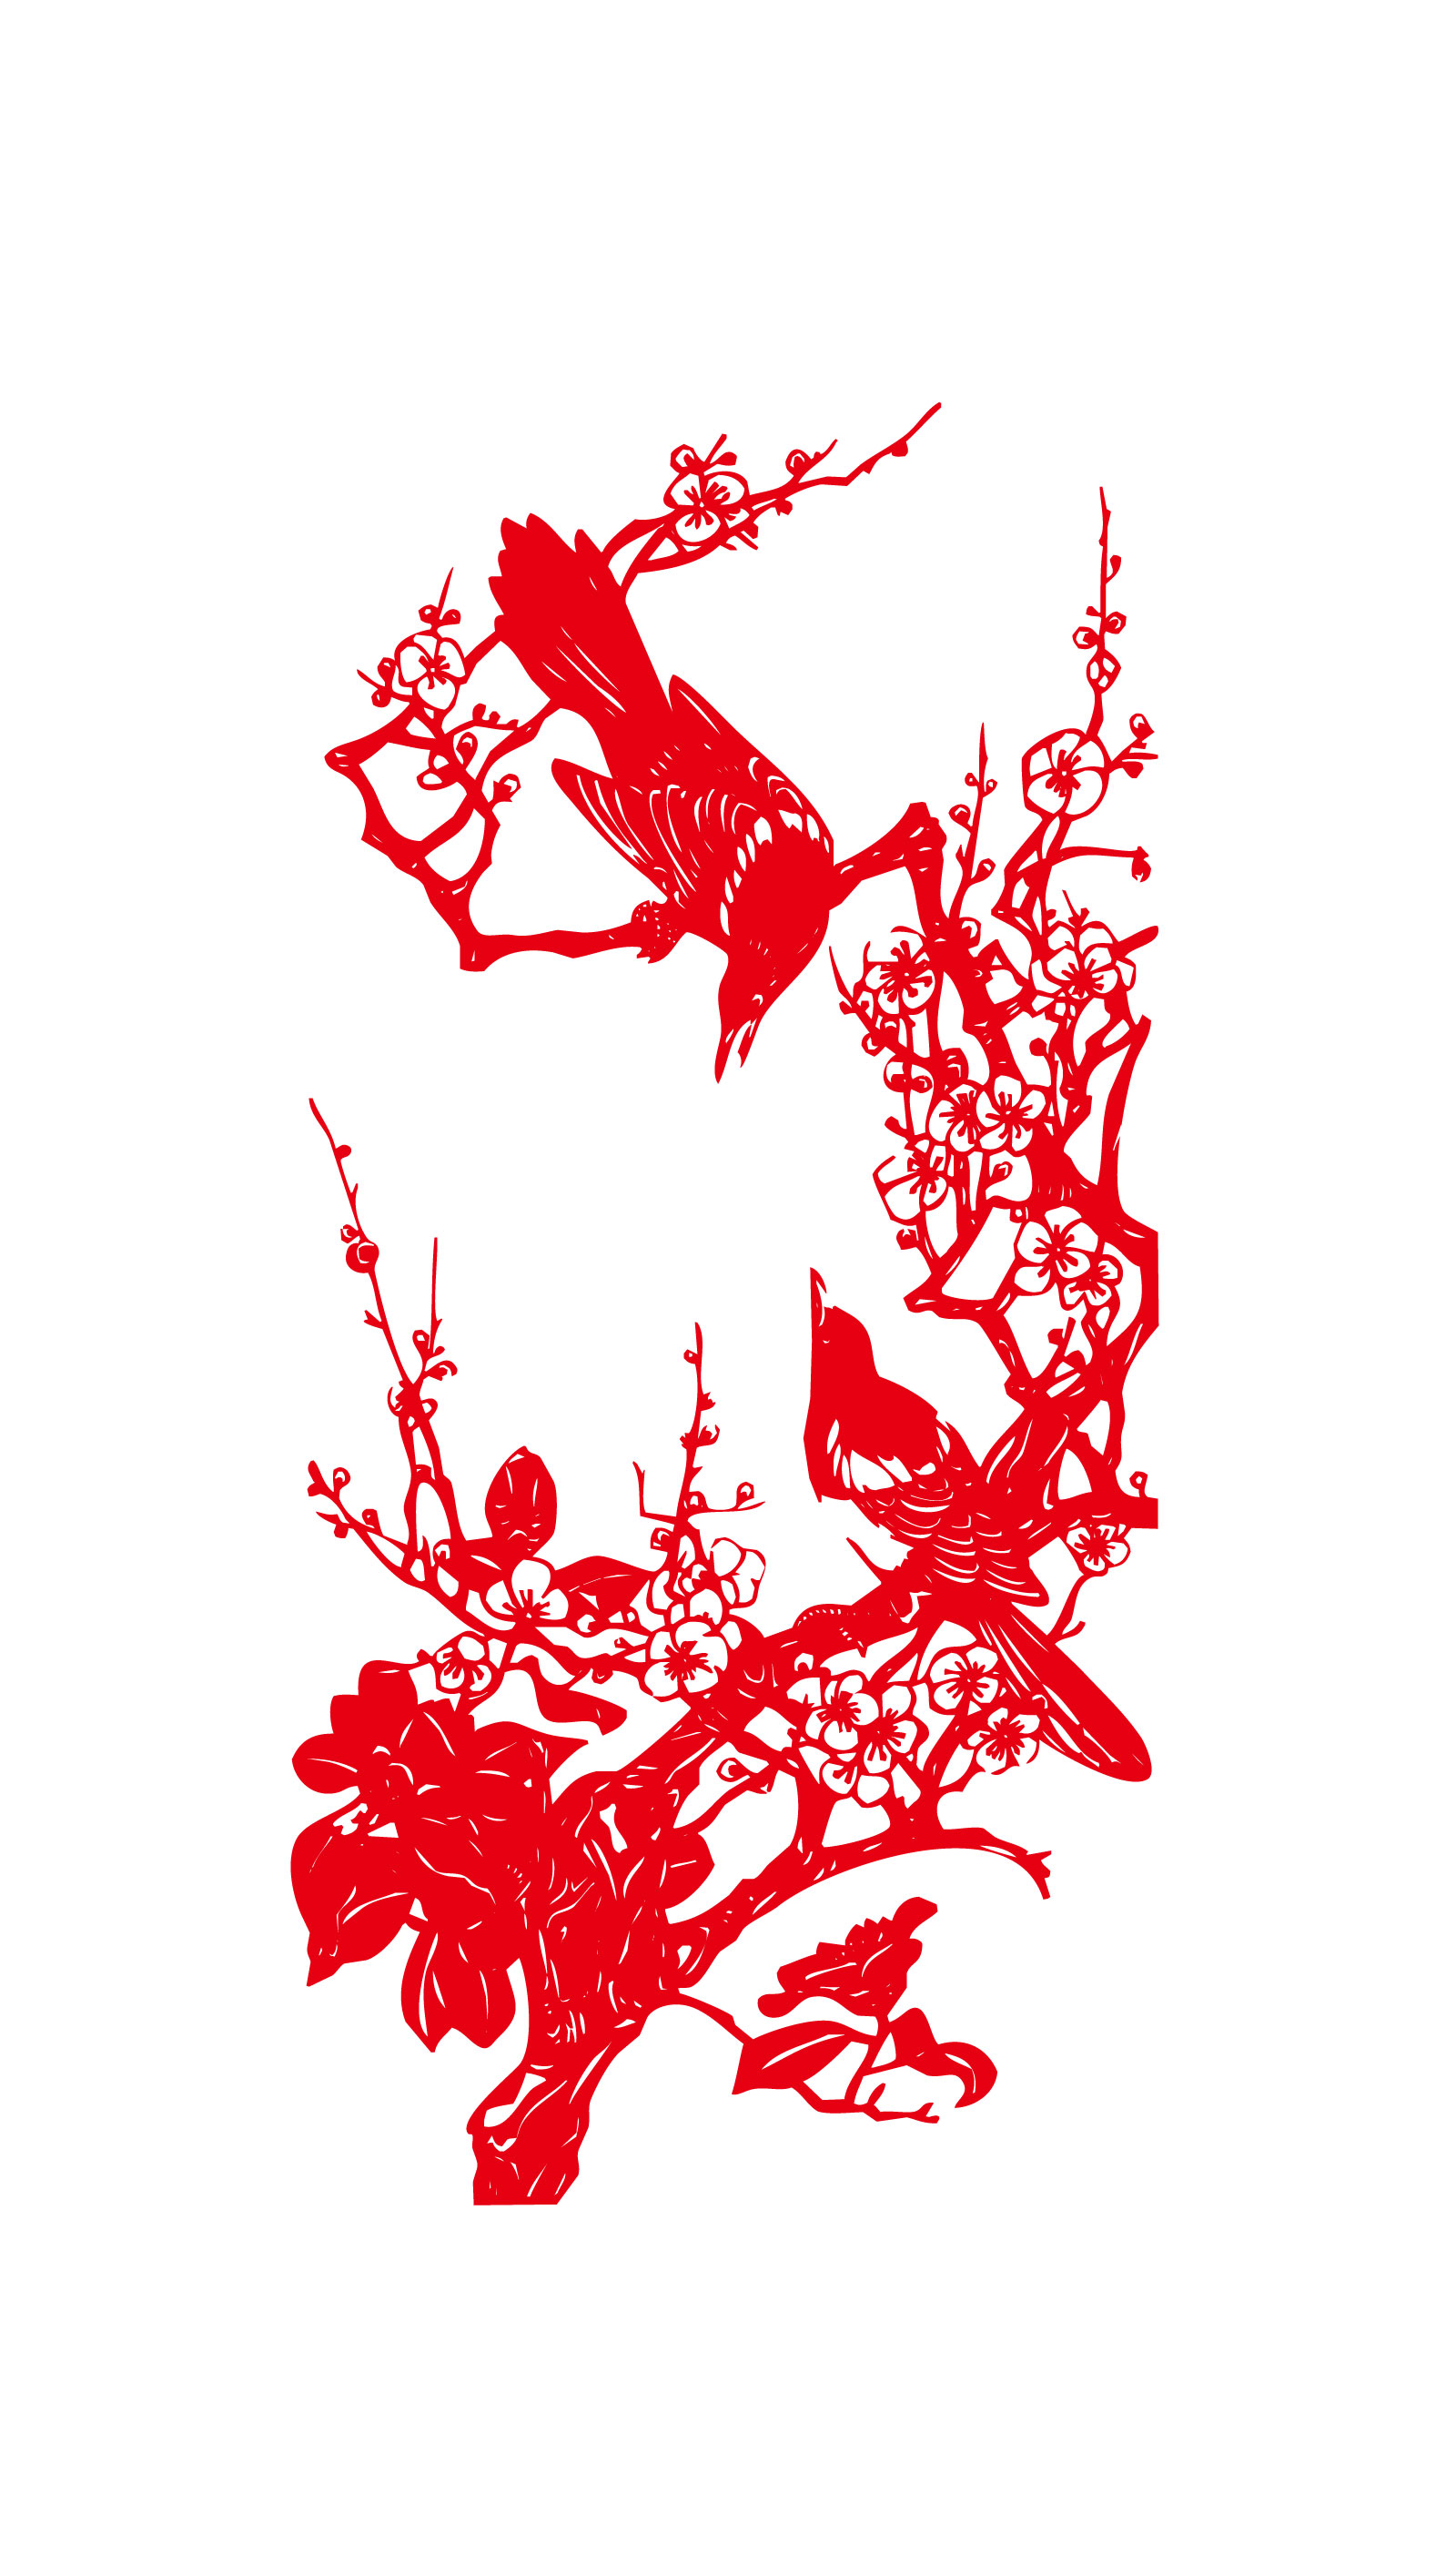 The magpies paper-cut design vector - Illustrations Vectors AI ESP